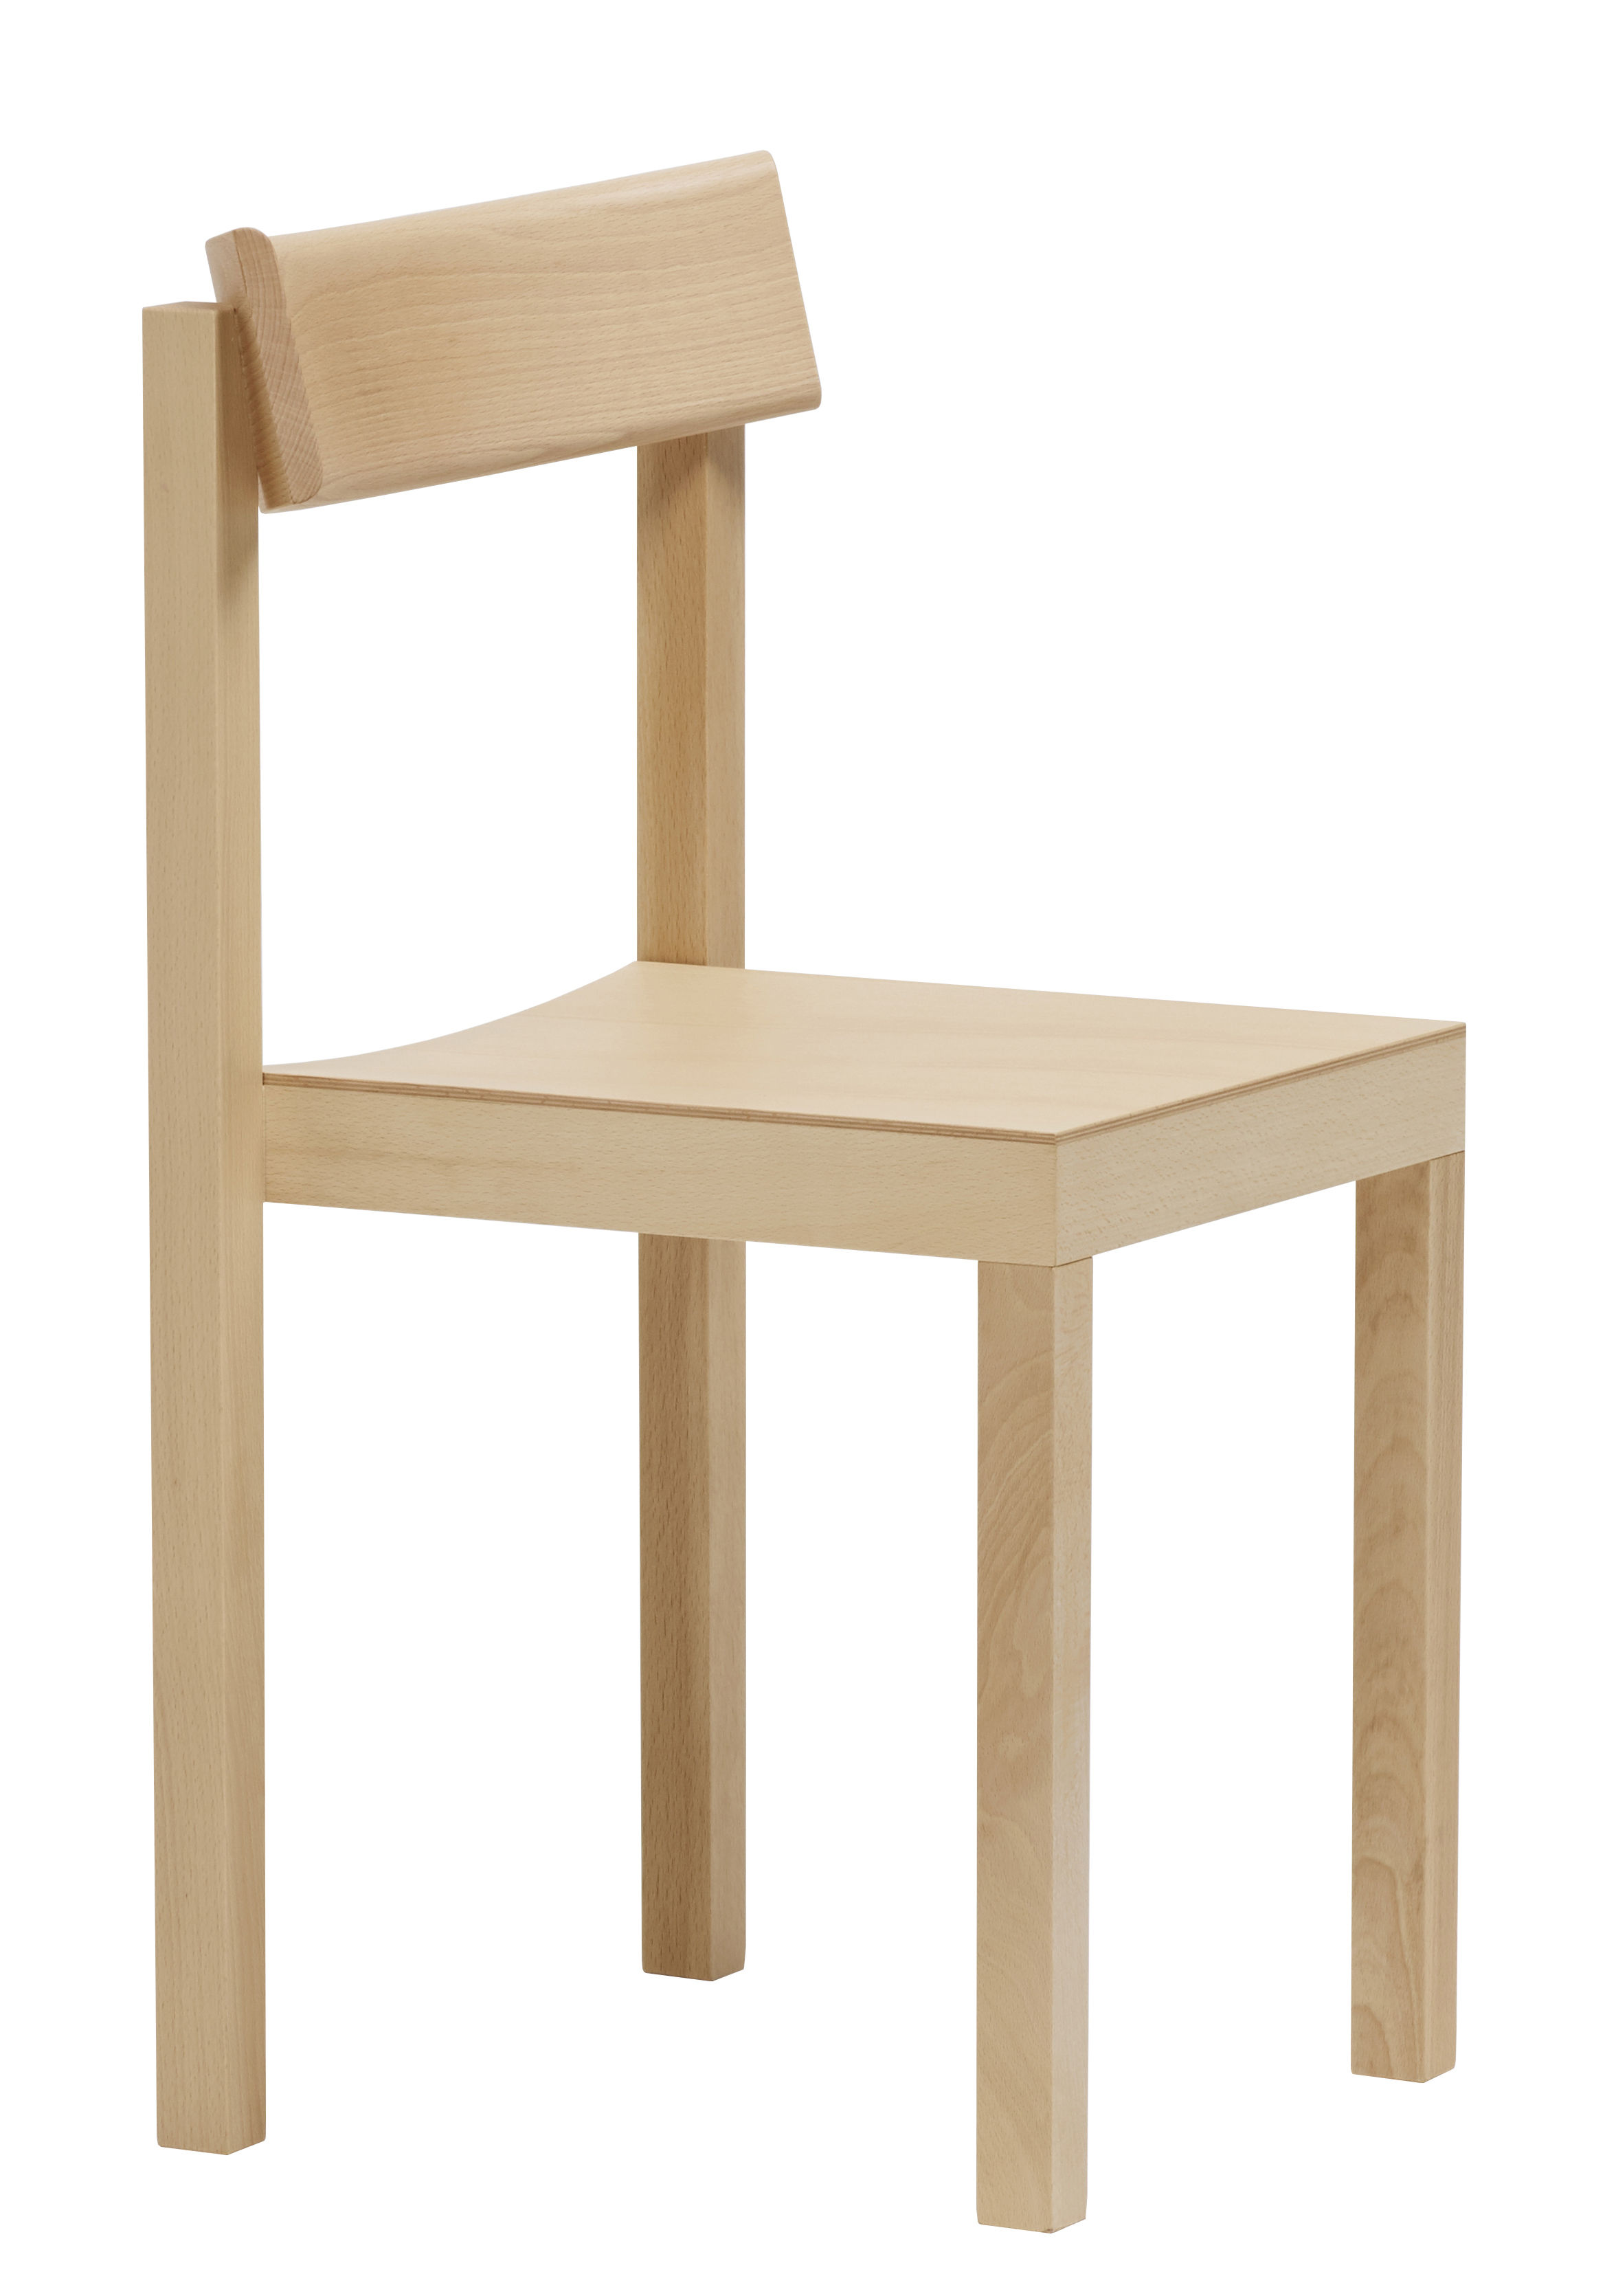 Furniture - Chairs - Primo Stacking chair - / Wood by Mattiazzi - Natural beech - Natural beechwood